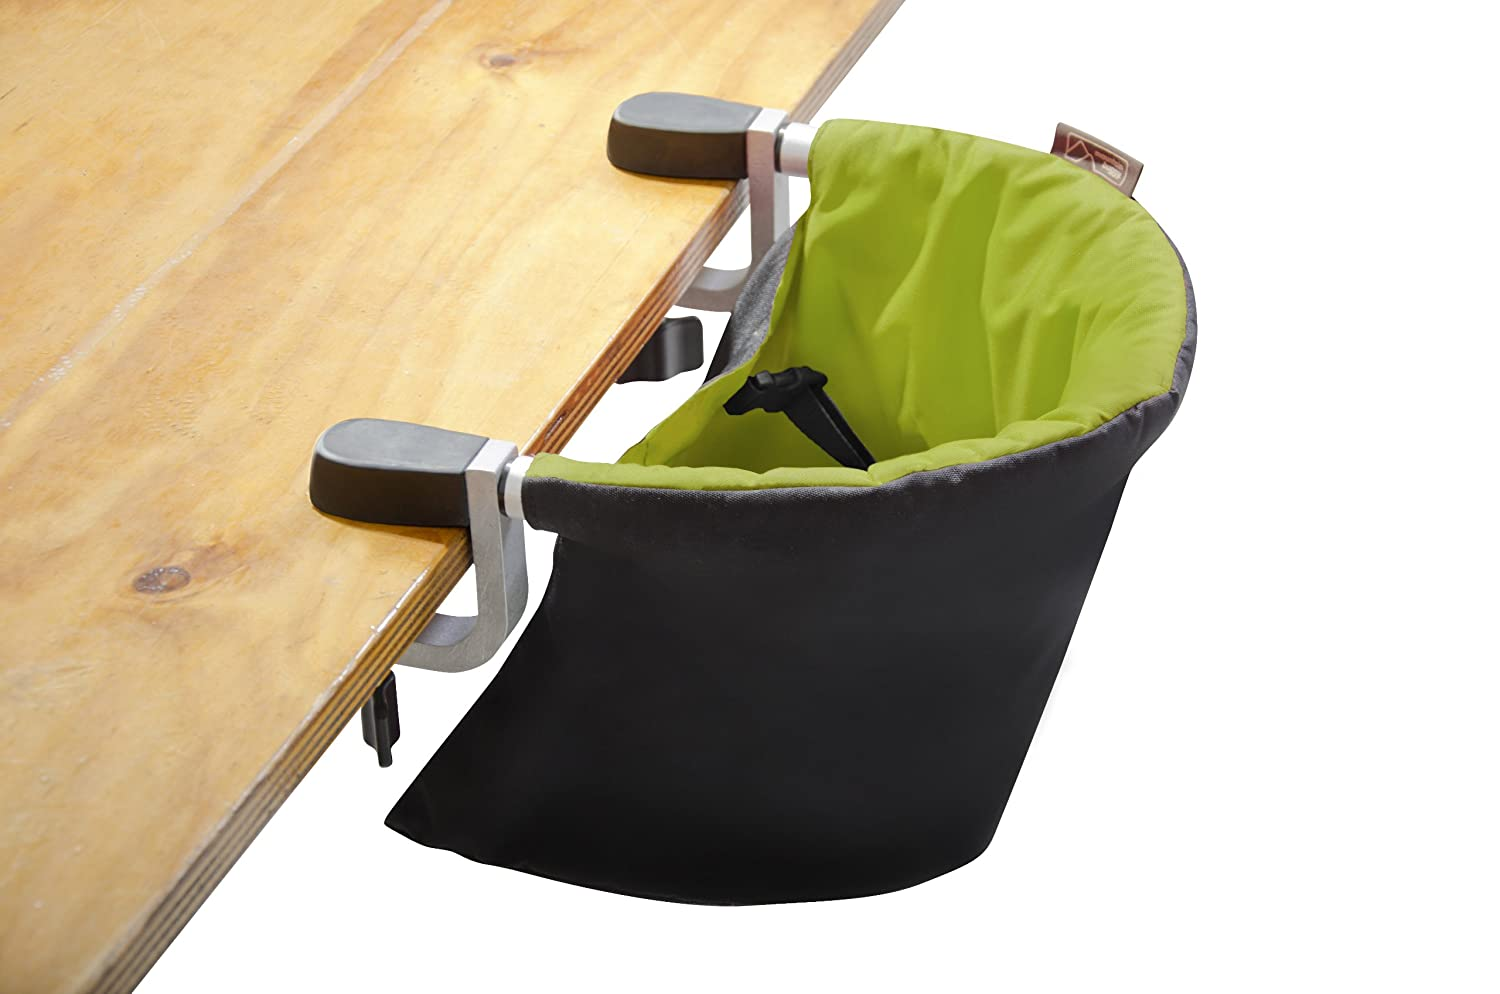 Beau Amazon.com : Mountain Buggy Pod Clip On Highchair, Lime : Table Hook On  Booster Seats : Baby